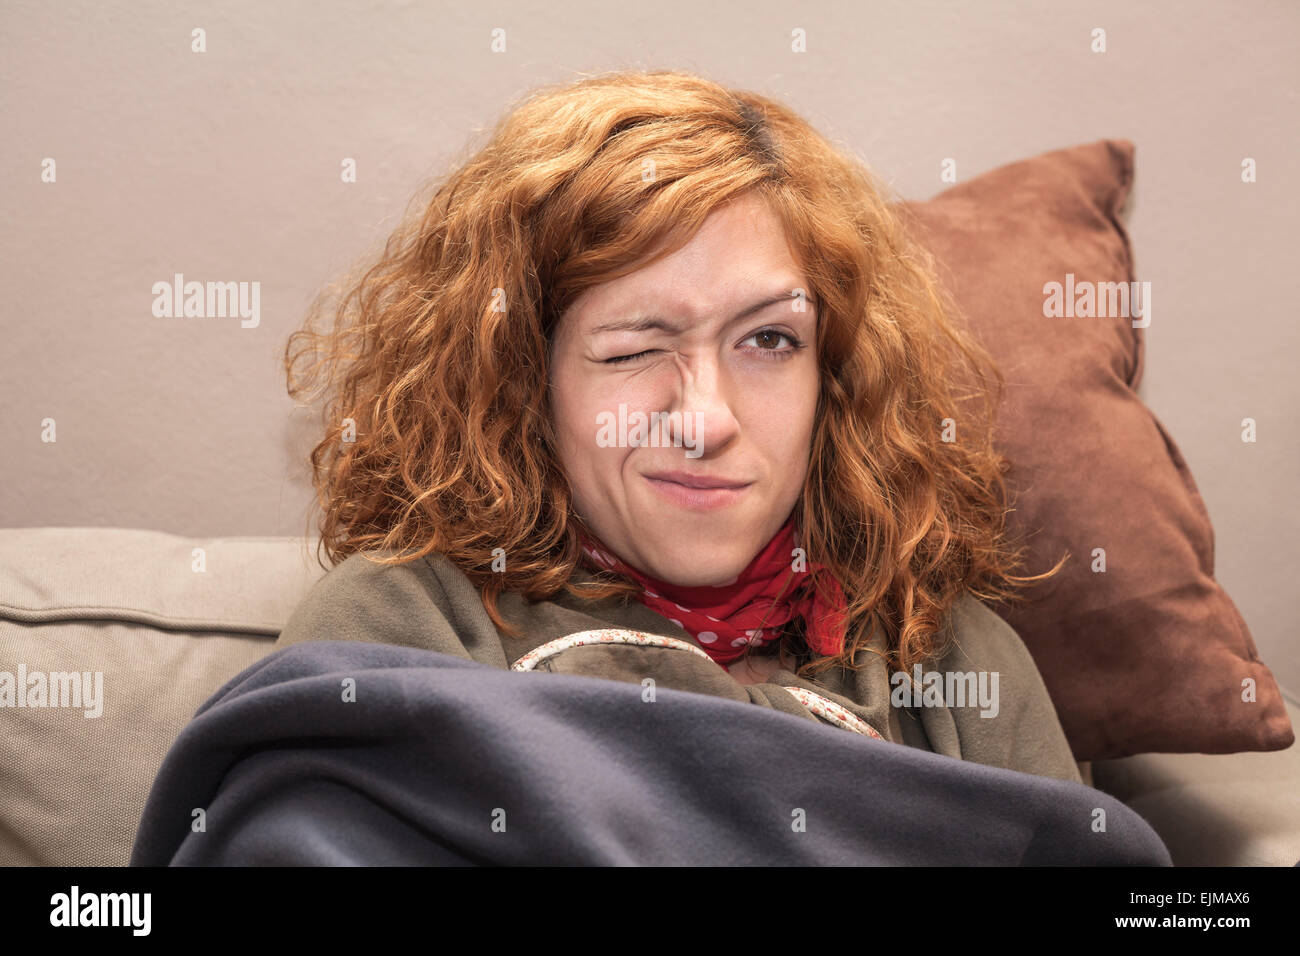 Closeup of a redhead woman face with one eye closed, relaxing on the sofa at home. - Stock Image